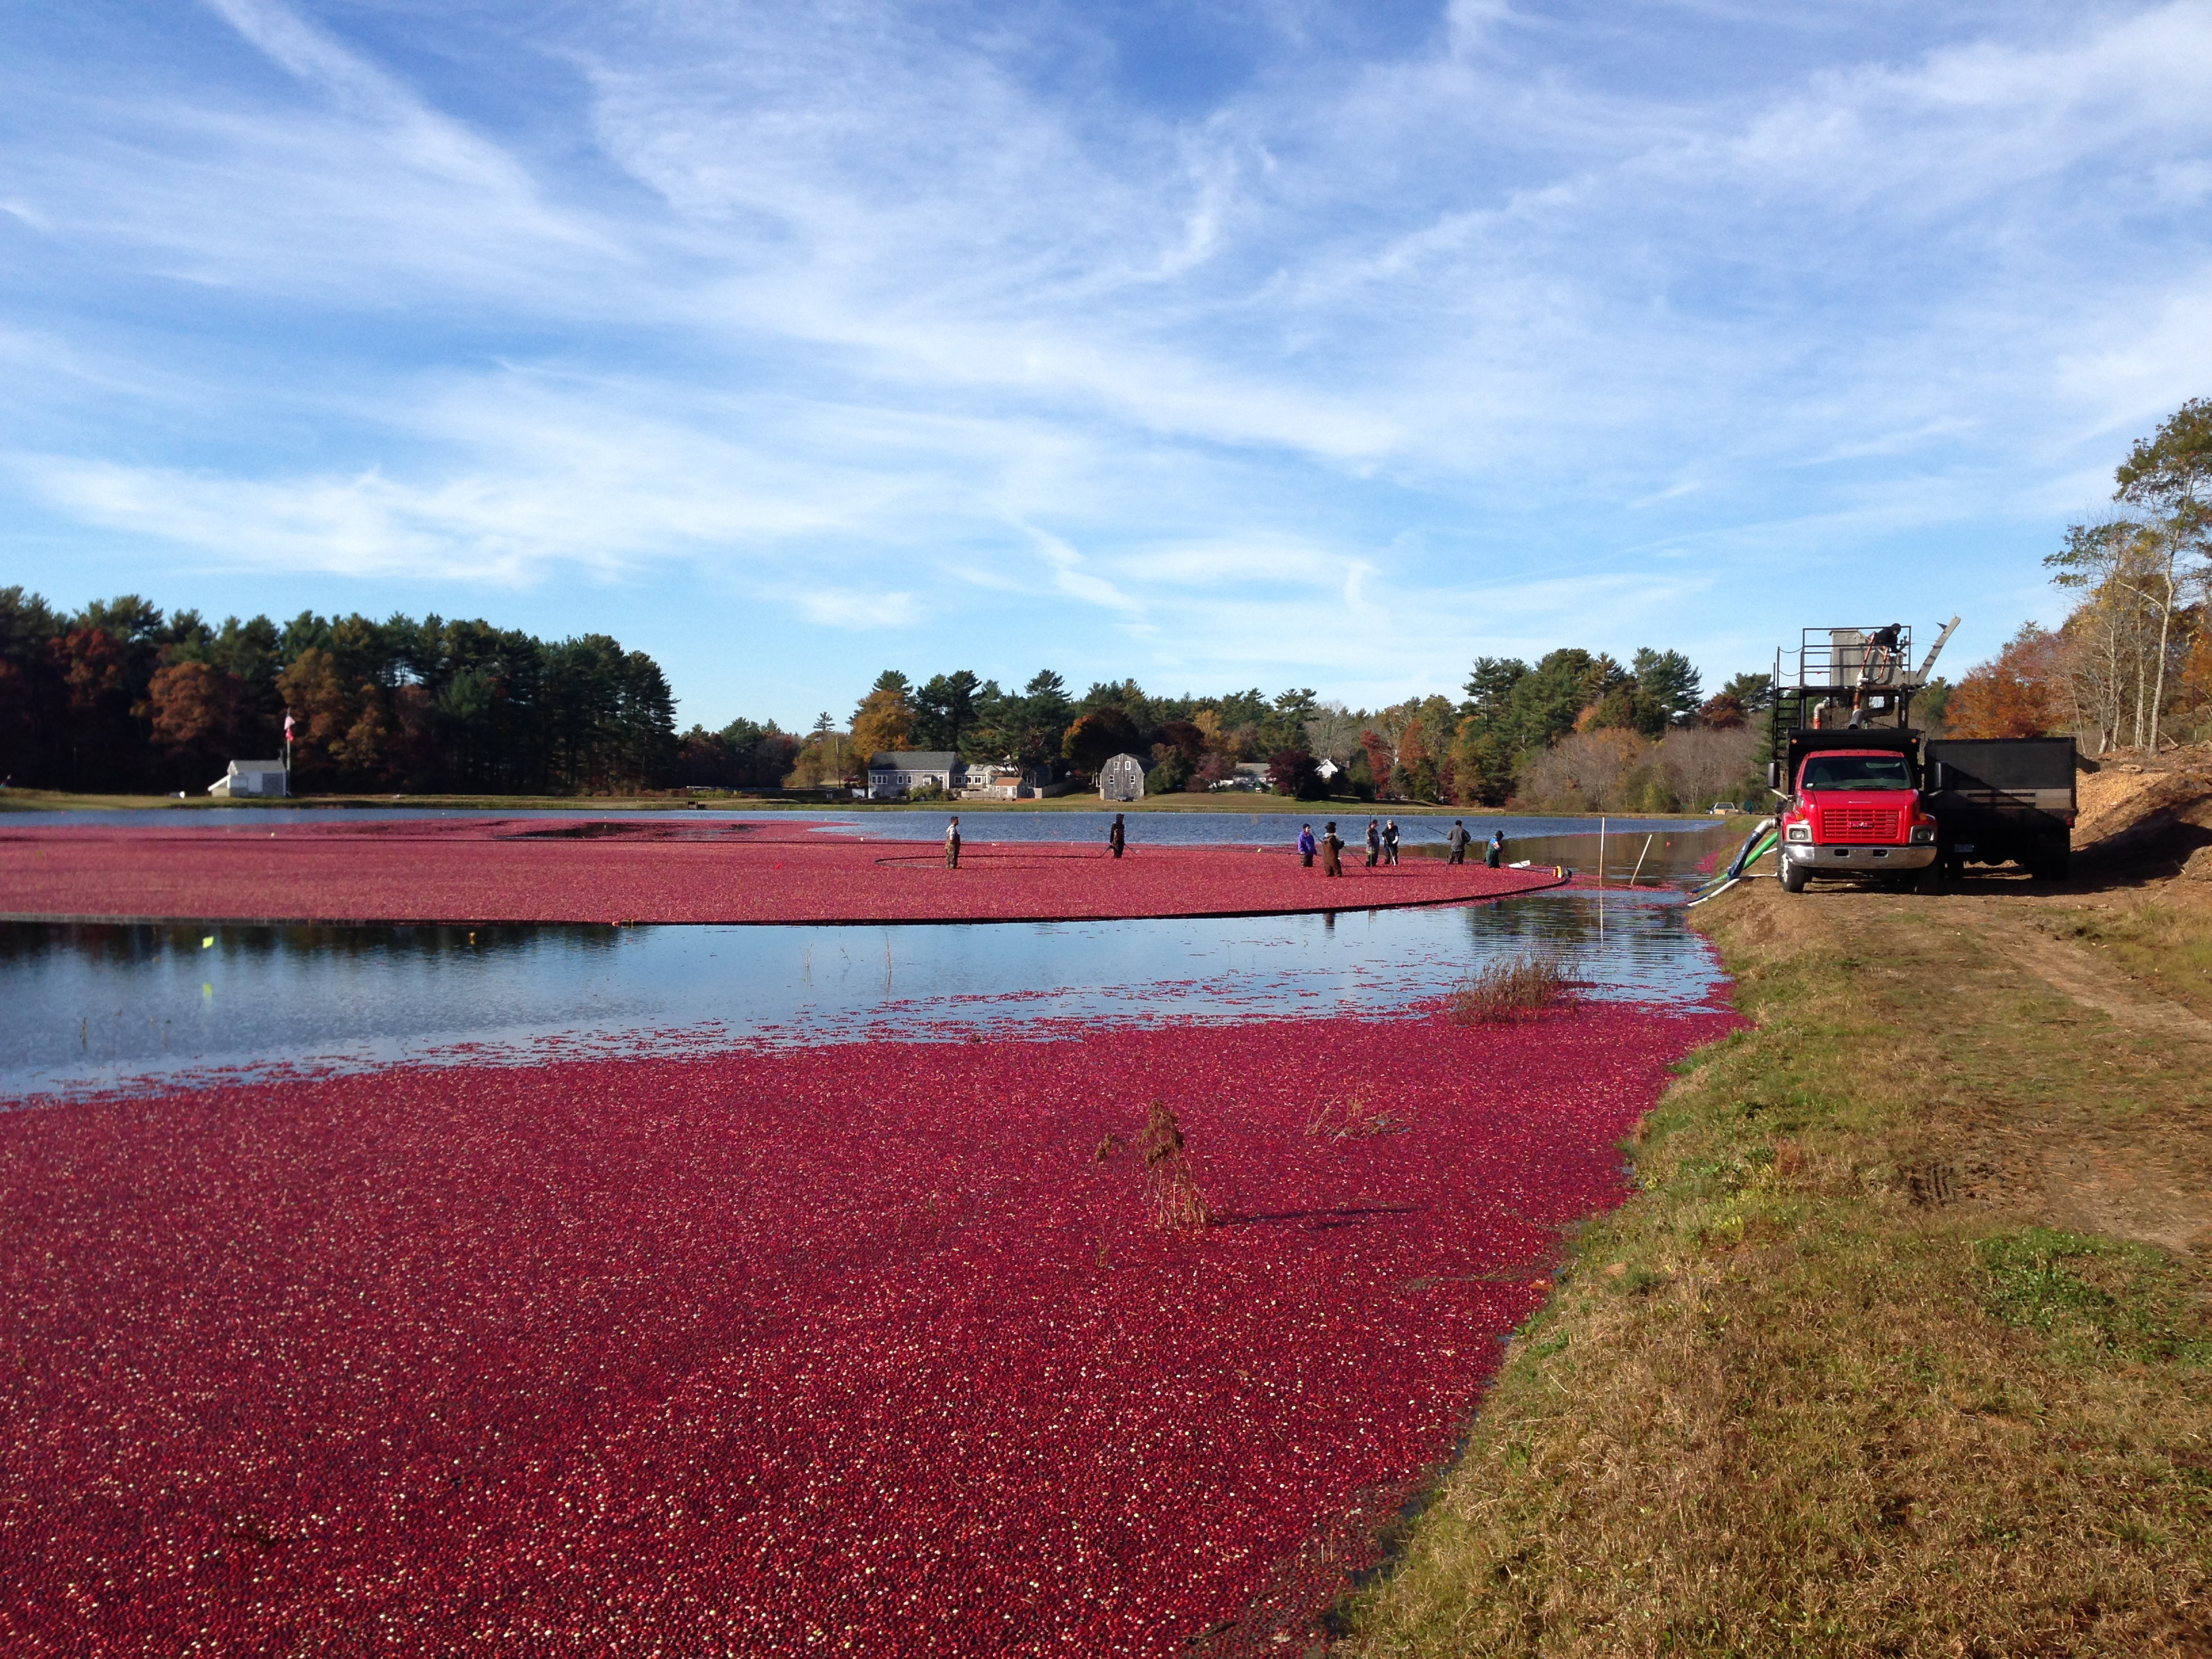 Growers load cranberries after a harvest at Mayflower Cranberries in Plympton, Mass.